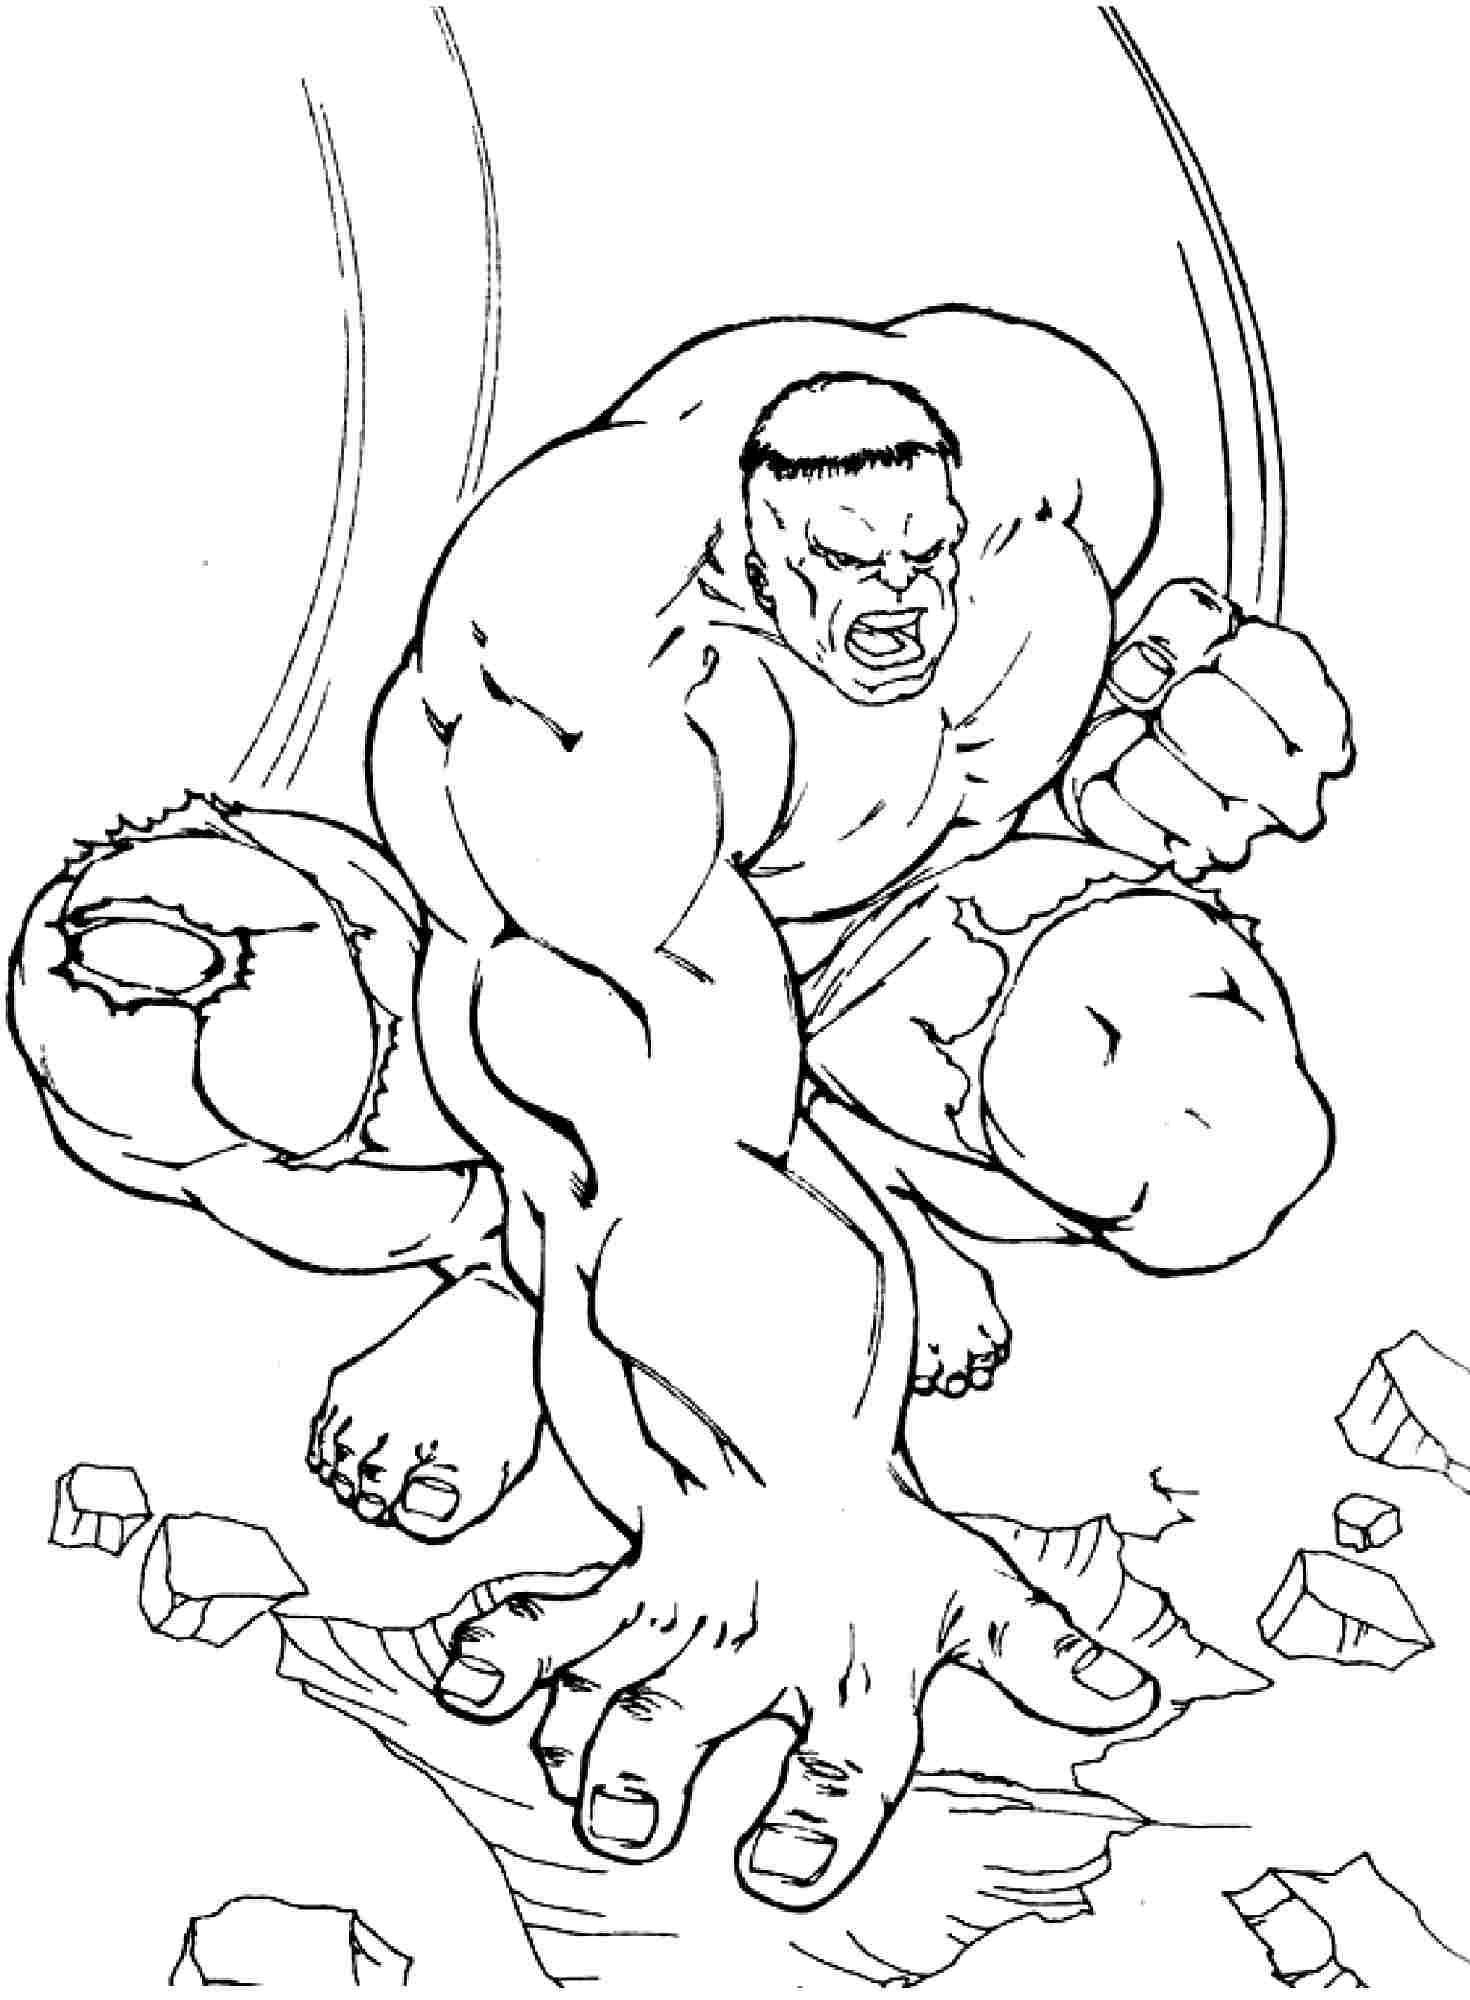 25 Popular Hulk Coloring Pages For Toddler Coloring Pages Hulk Coloring Pages Coloring Pictures